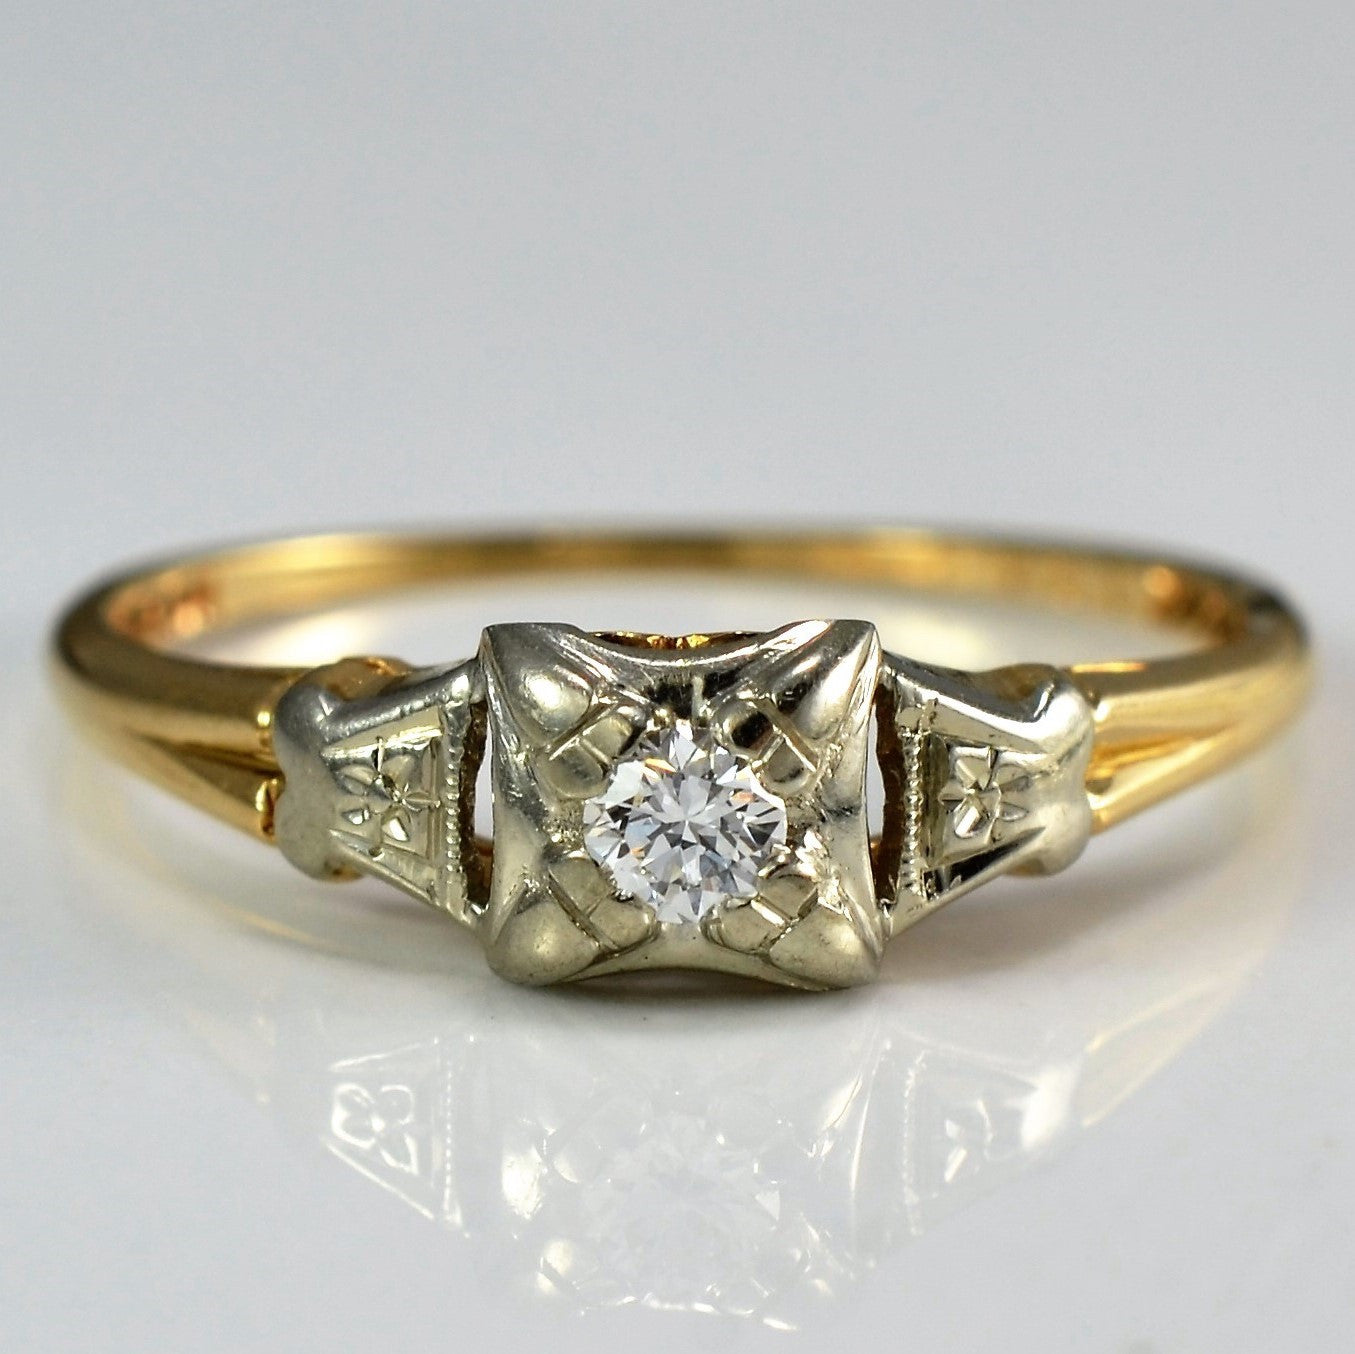 1930's 'Bridal Wreath' Engagement Ring | 0.10 ct, SZ 6.25 |